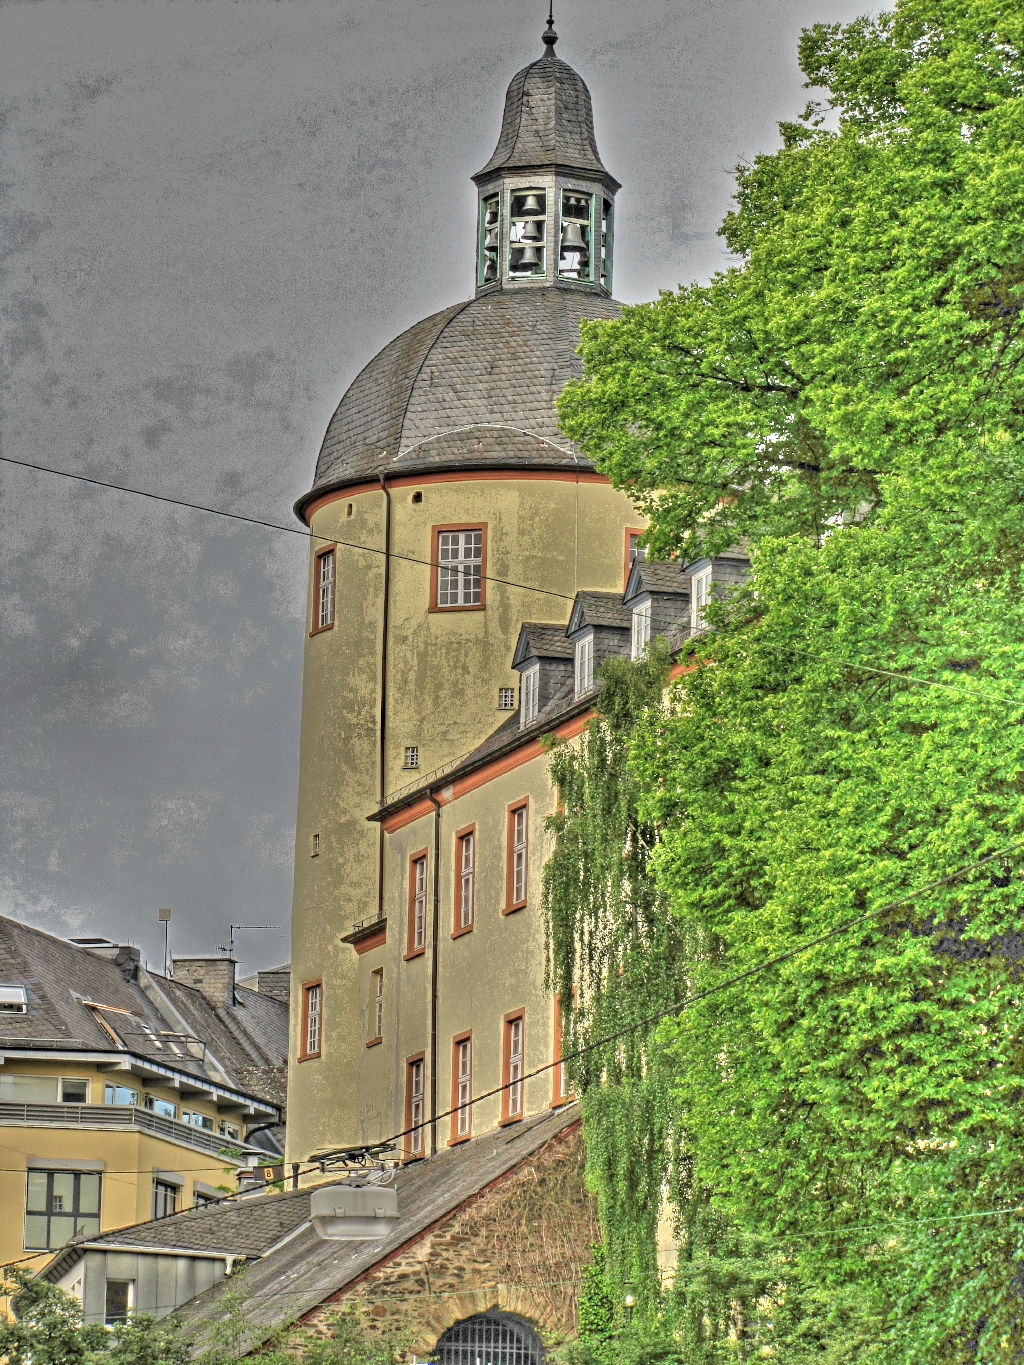 DickerTurm2_pregamma_1_fattal_alpha_0.1_beta_0.846_saturation_1.21_noiseredux_0.174